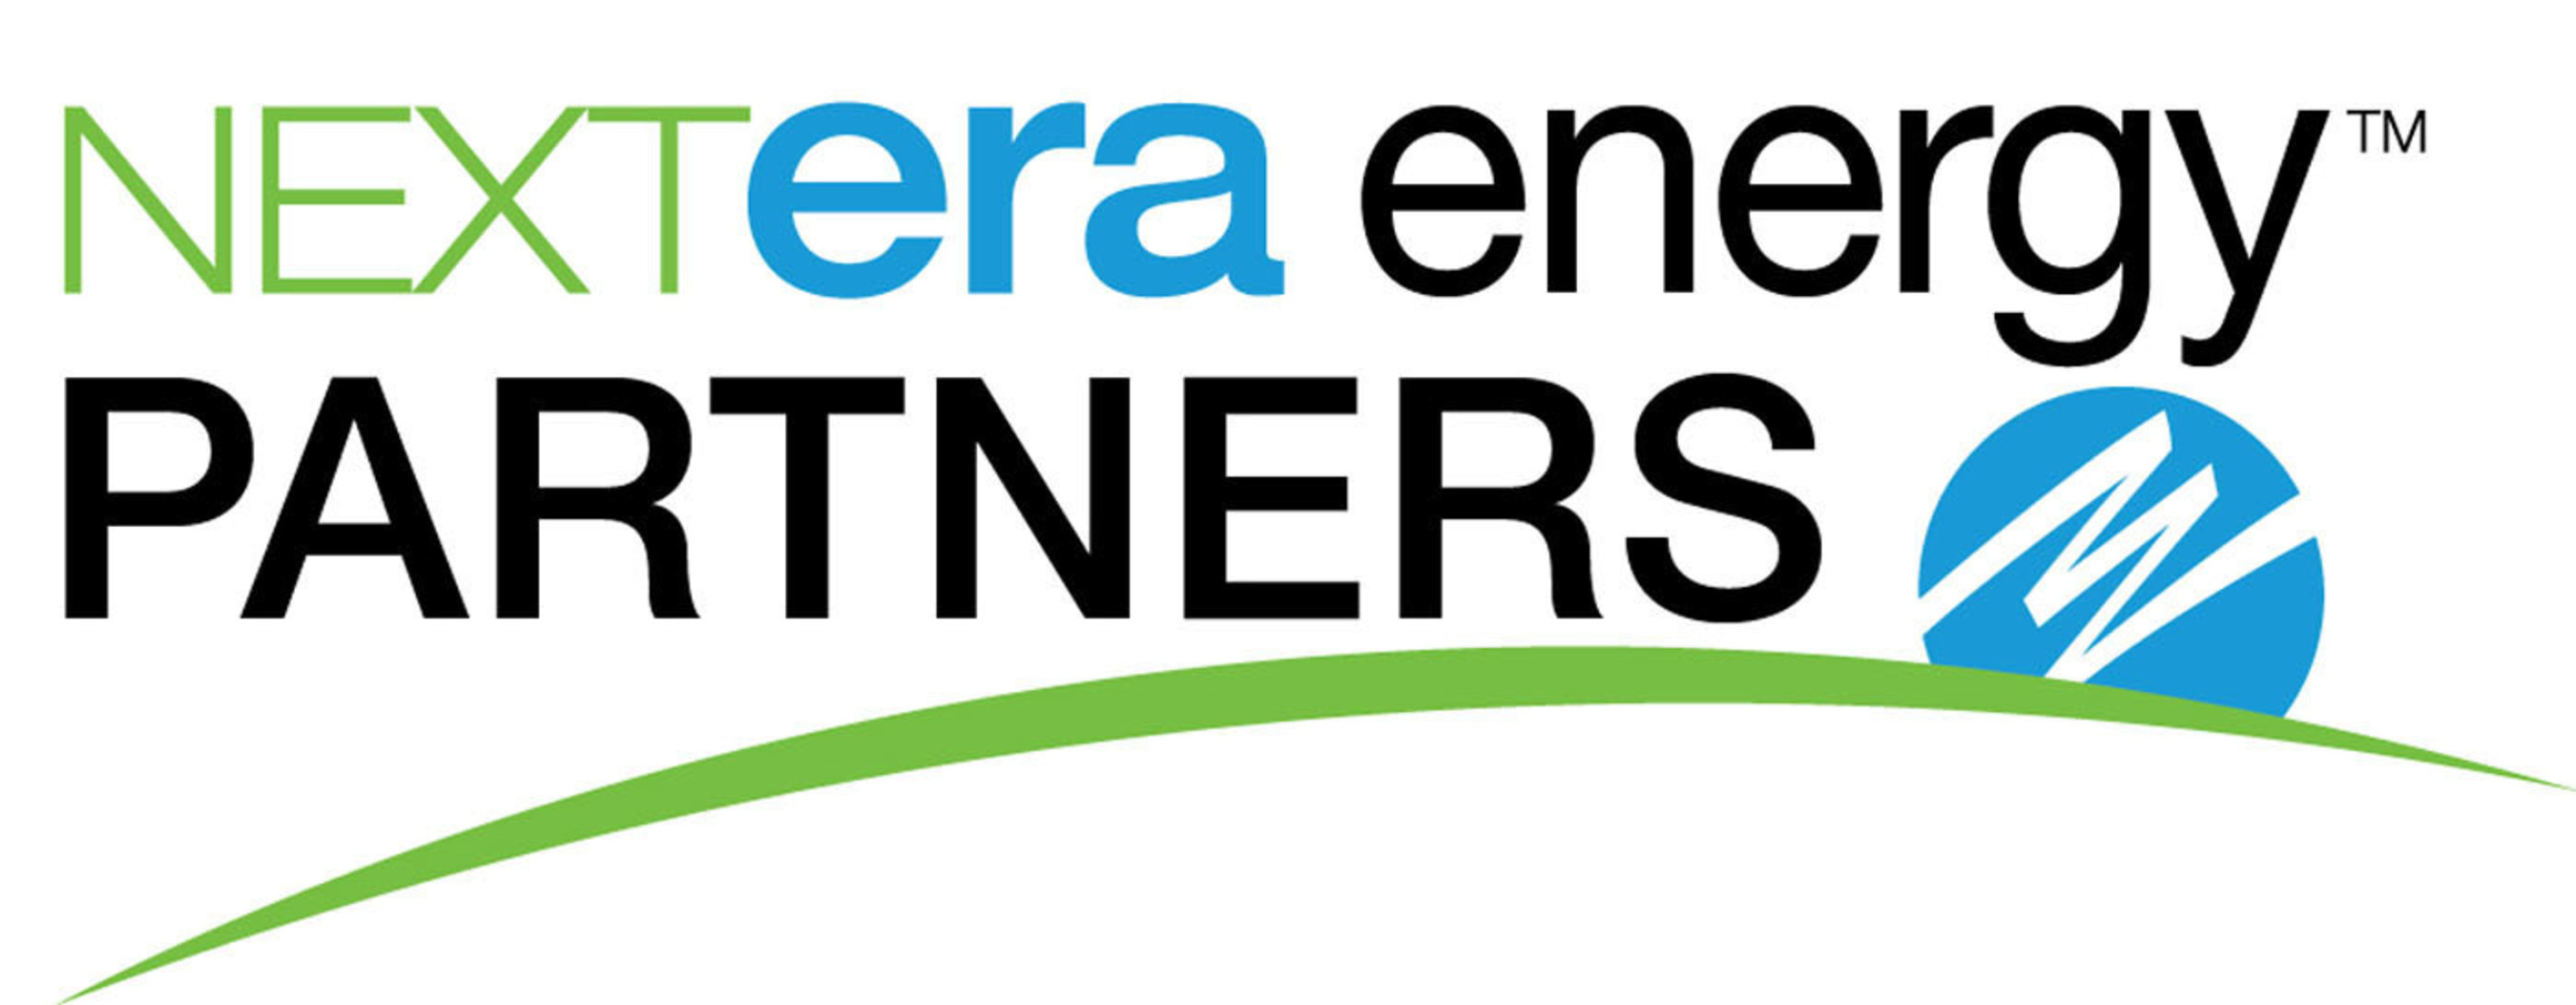 nextera energy partners lp launches public offering of